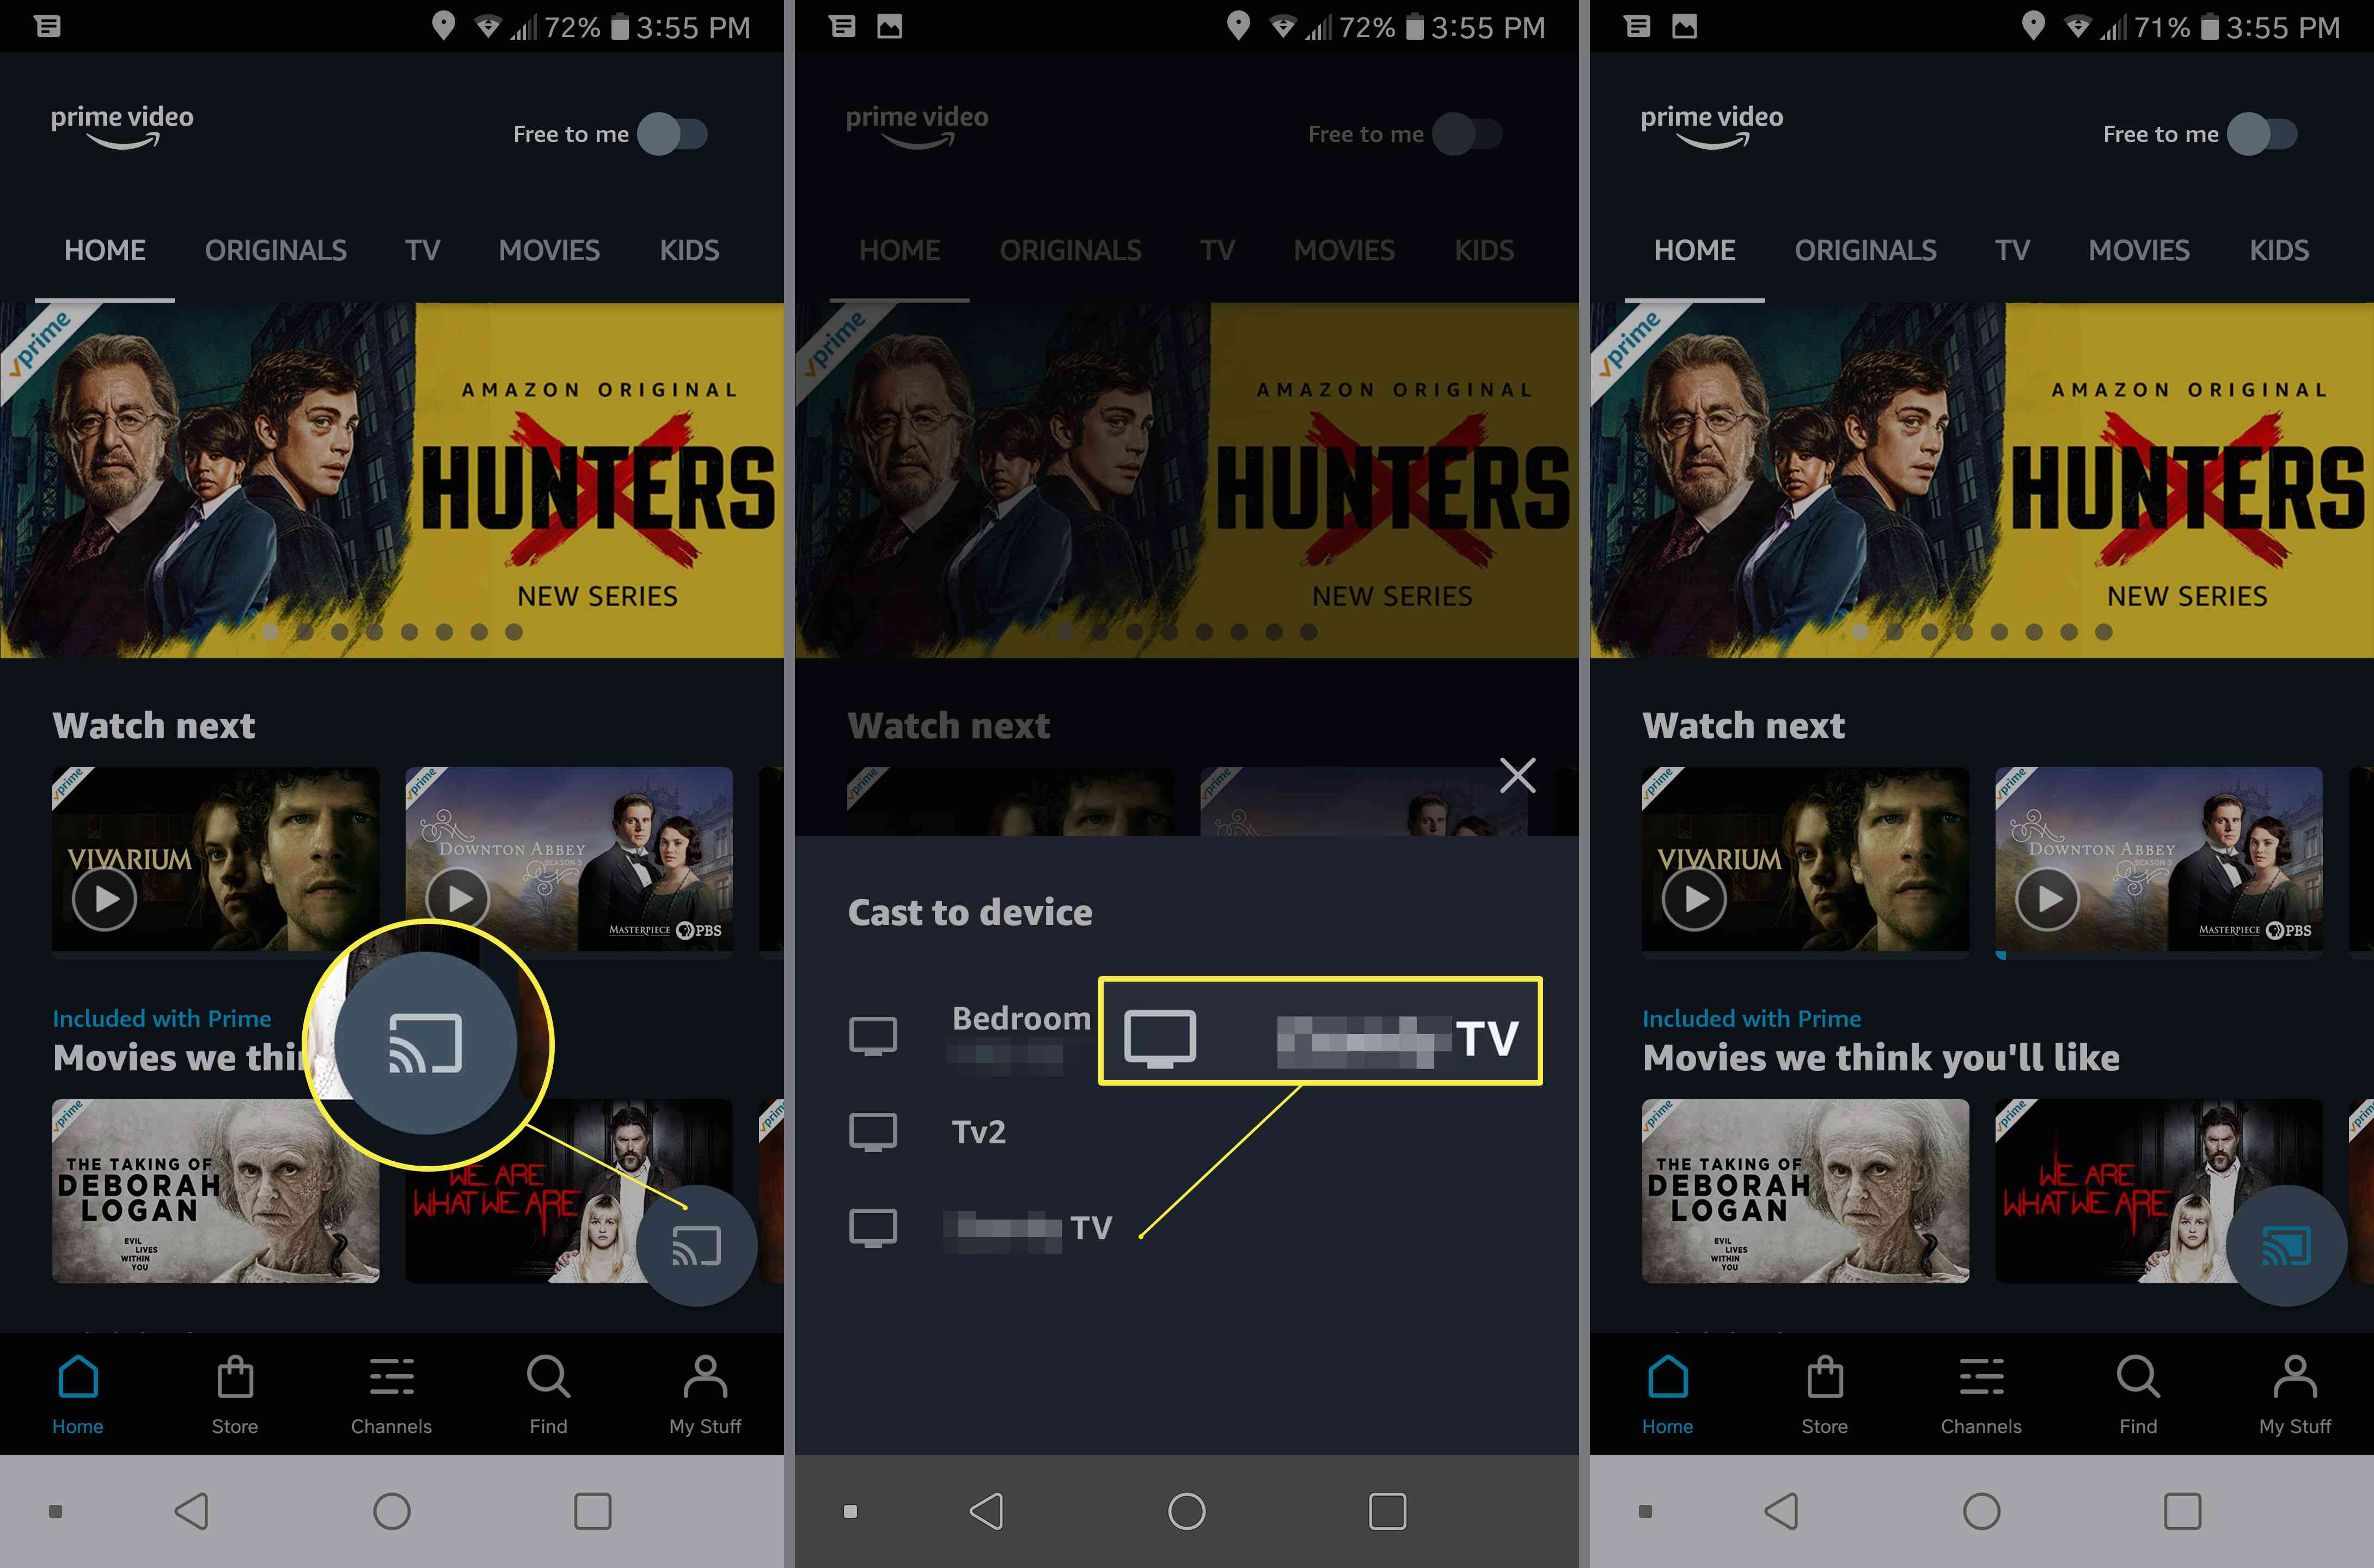 Setting up Prime Video app to cast to TV